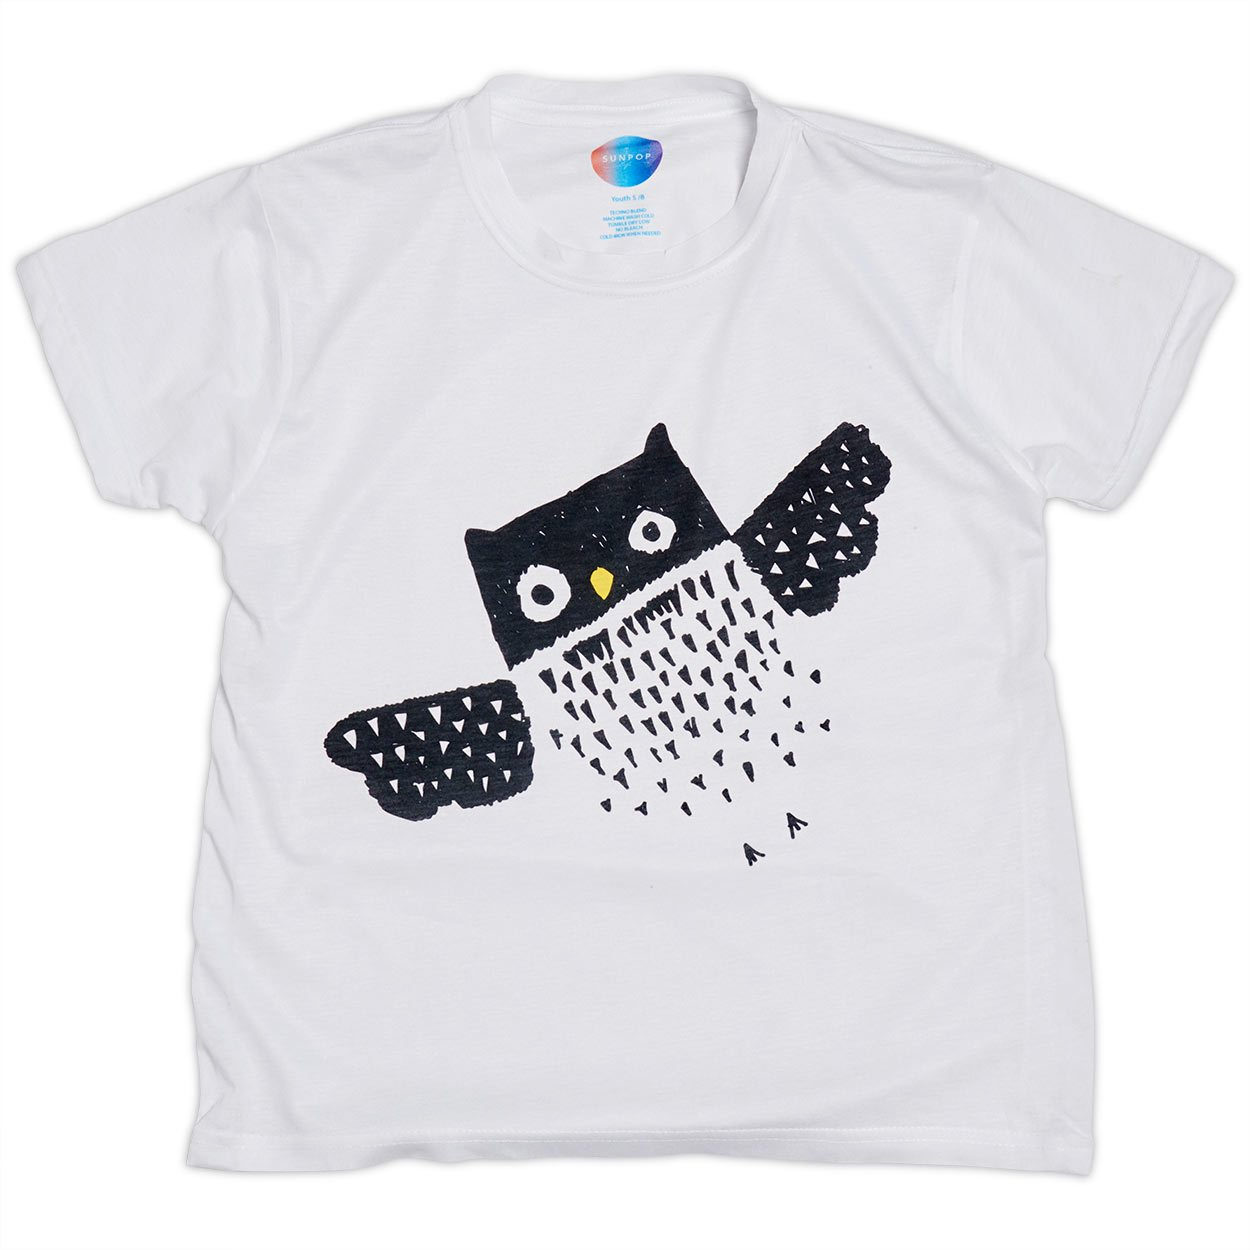 Kids Diagonal Owl Graphic T-shirt